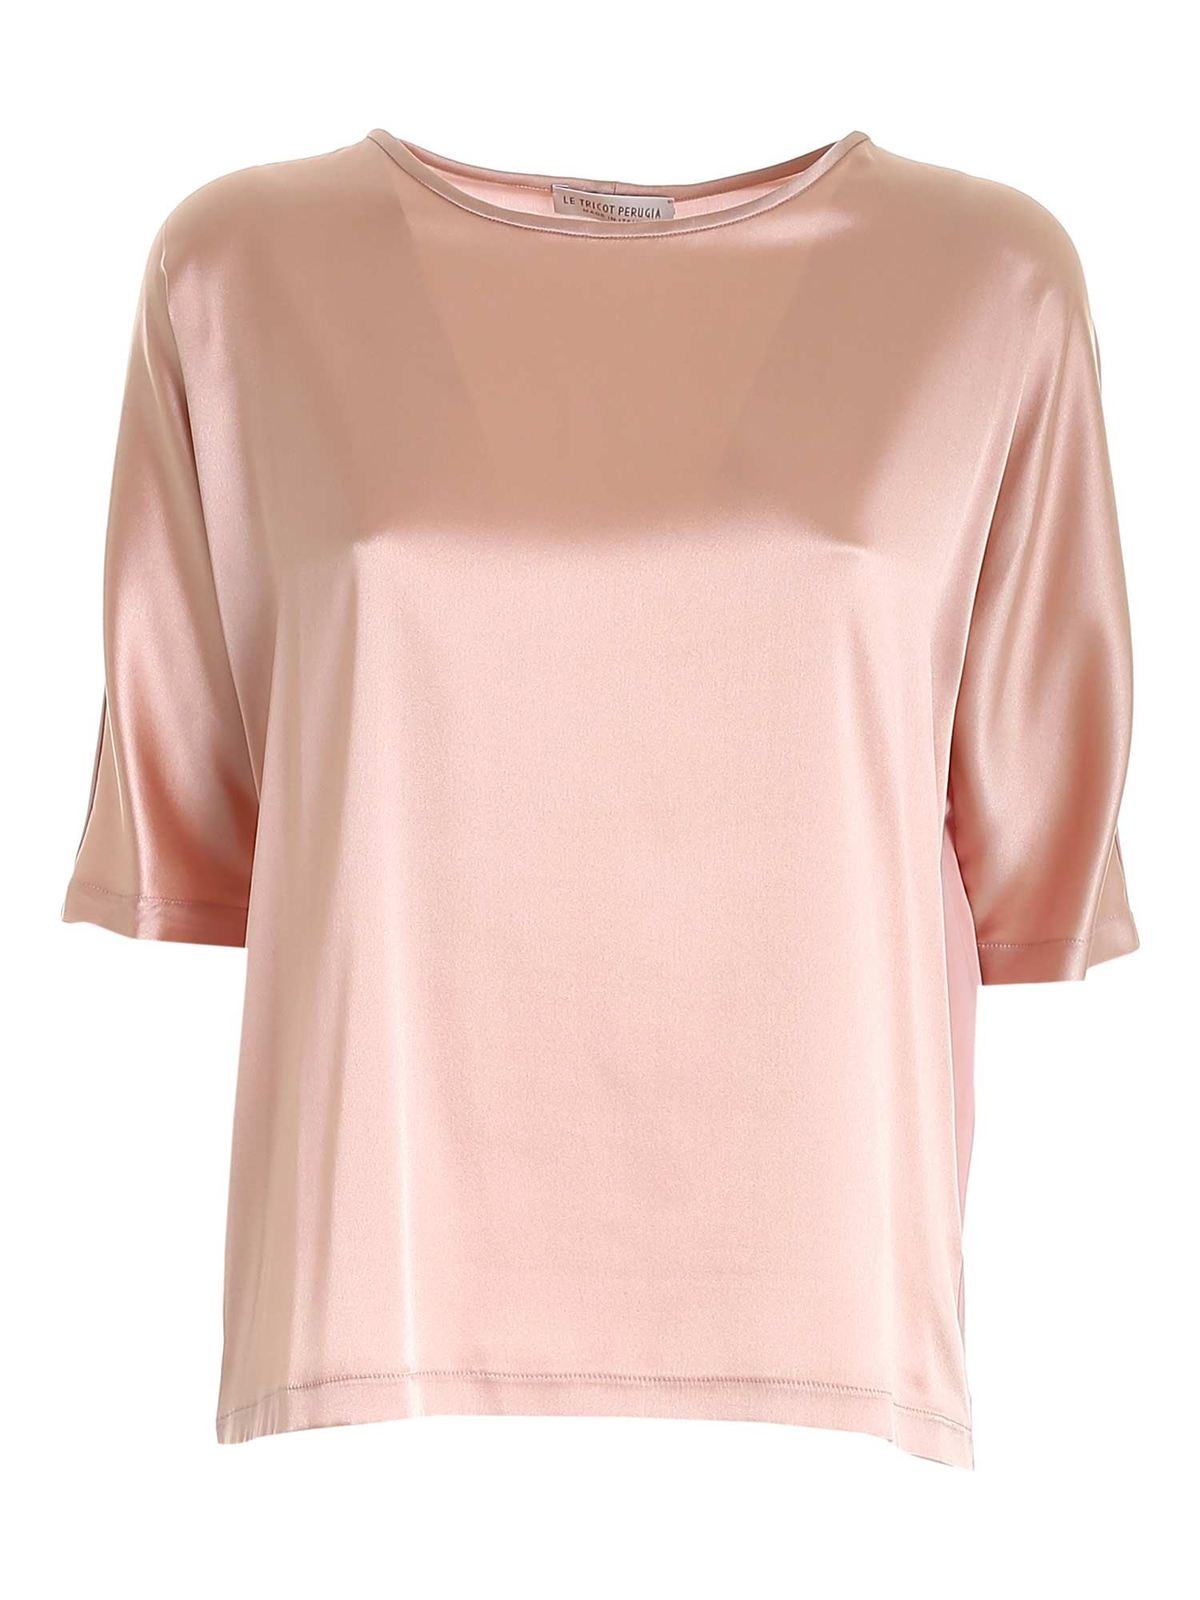 Le Tricot Perugia Silks SATIN STRETCH BLOUSE IN PINK